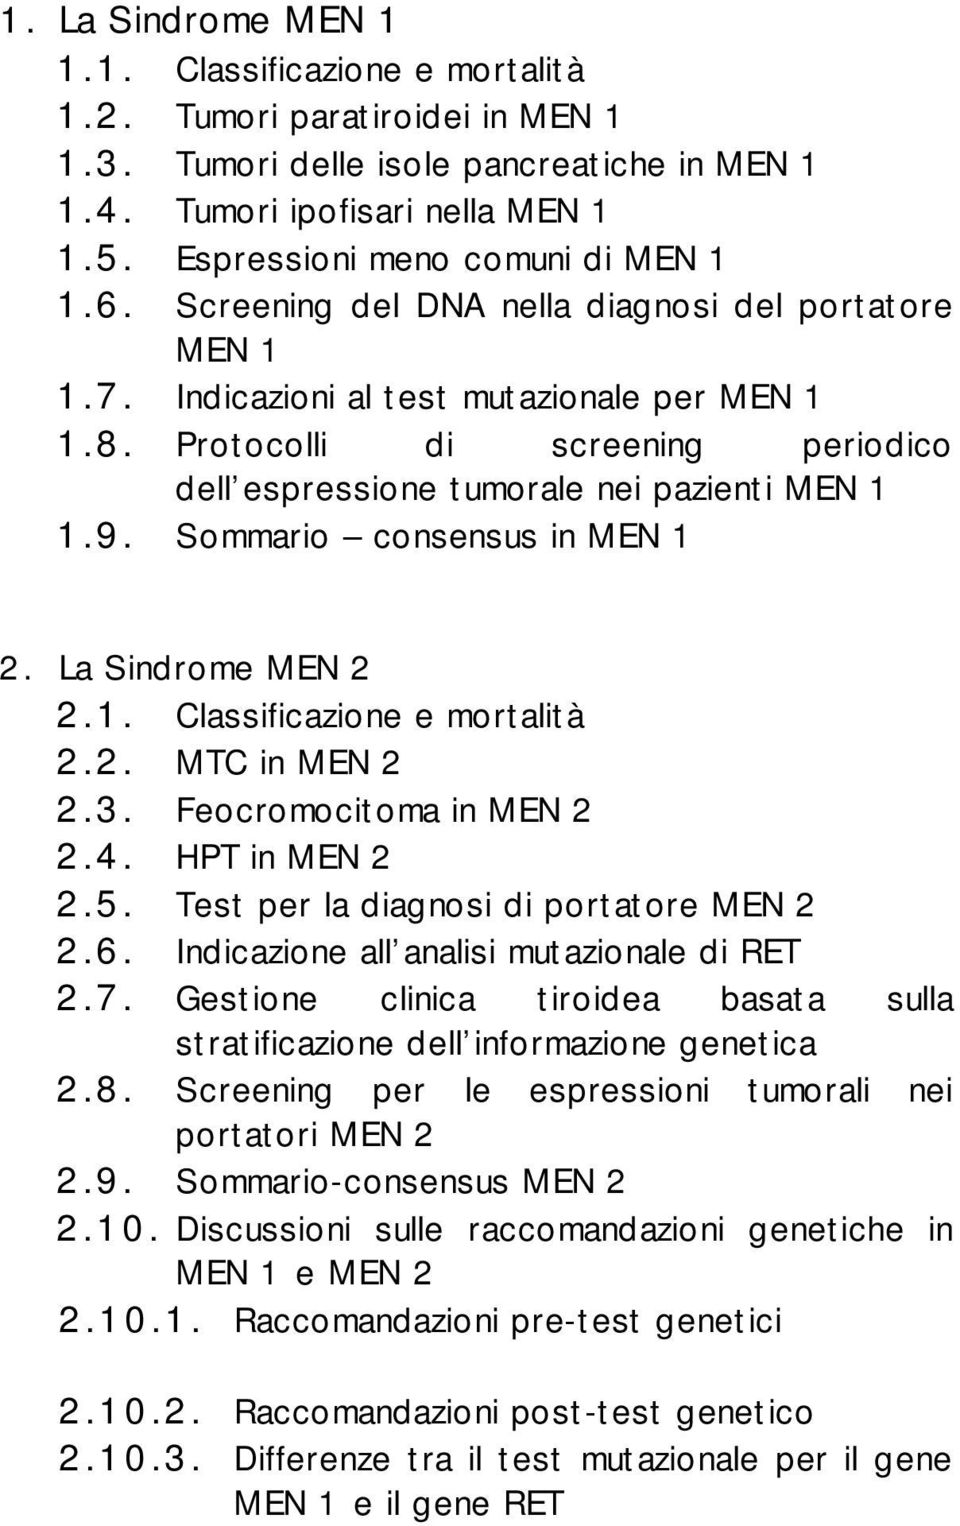 Protocolli di screening periodico dell espressione tumorale nei pazienti MEN 1 1.9. Sommario consensus in MEN 1 2. La Sindrome MEN 2 2.1. Classificazione e mortalità 2.2. MTC in MEN 2 2.3.